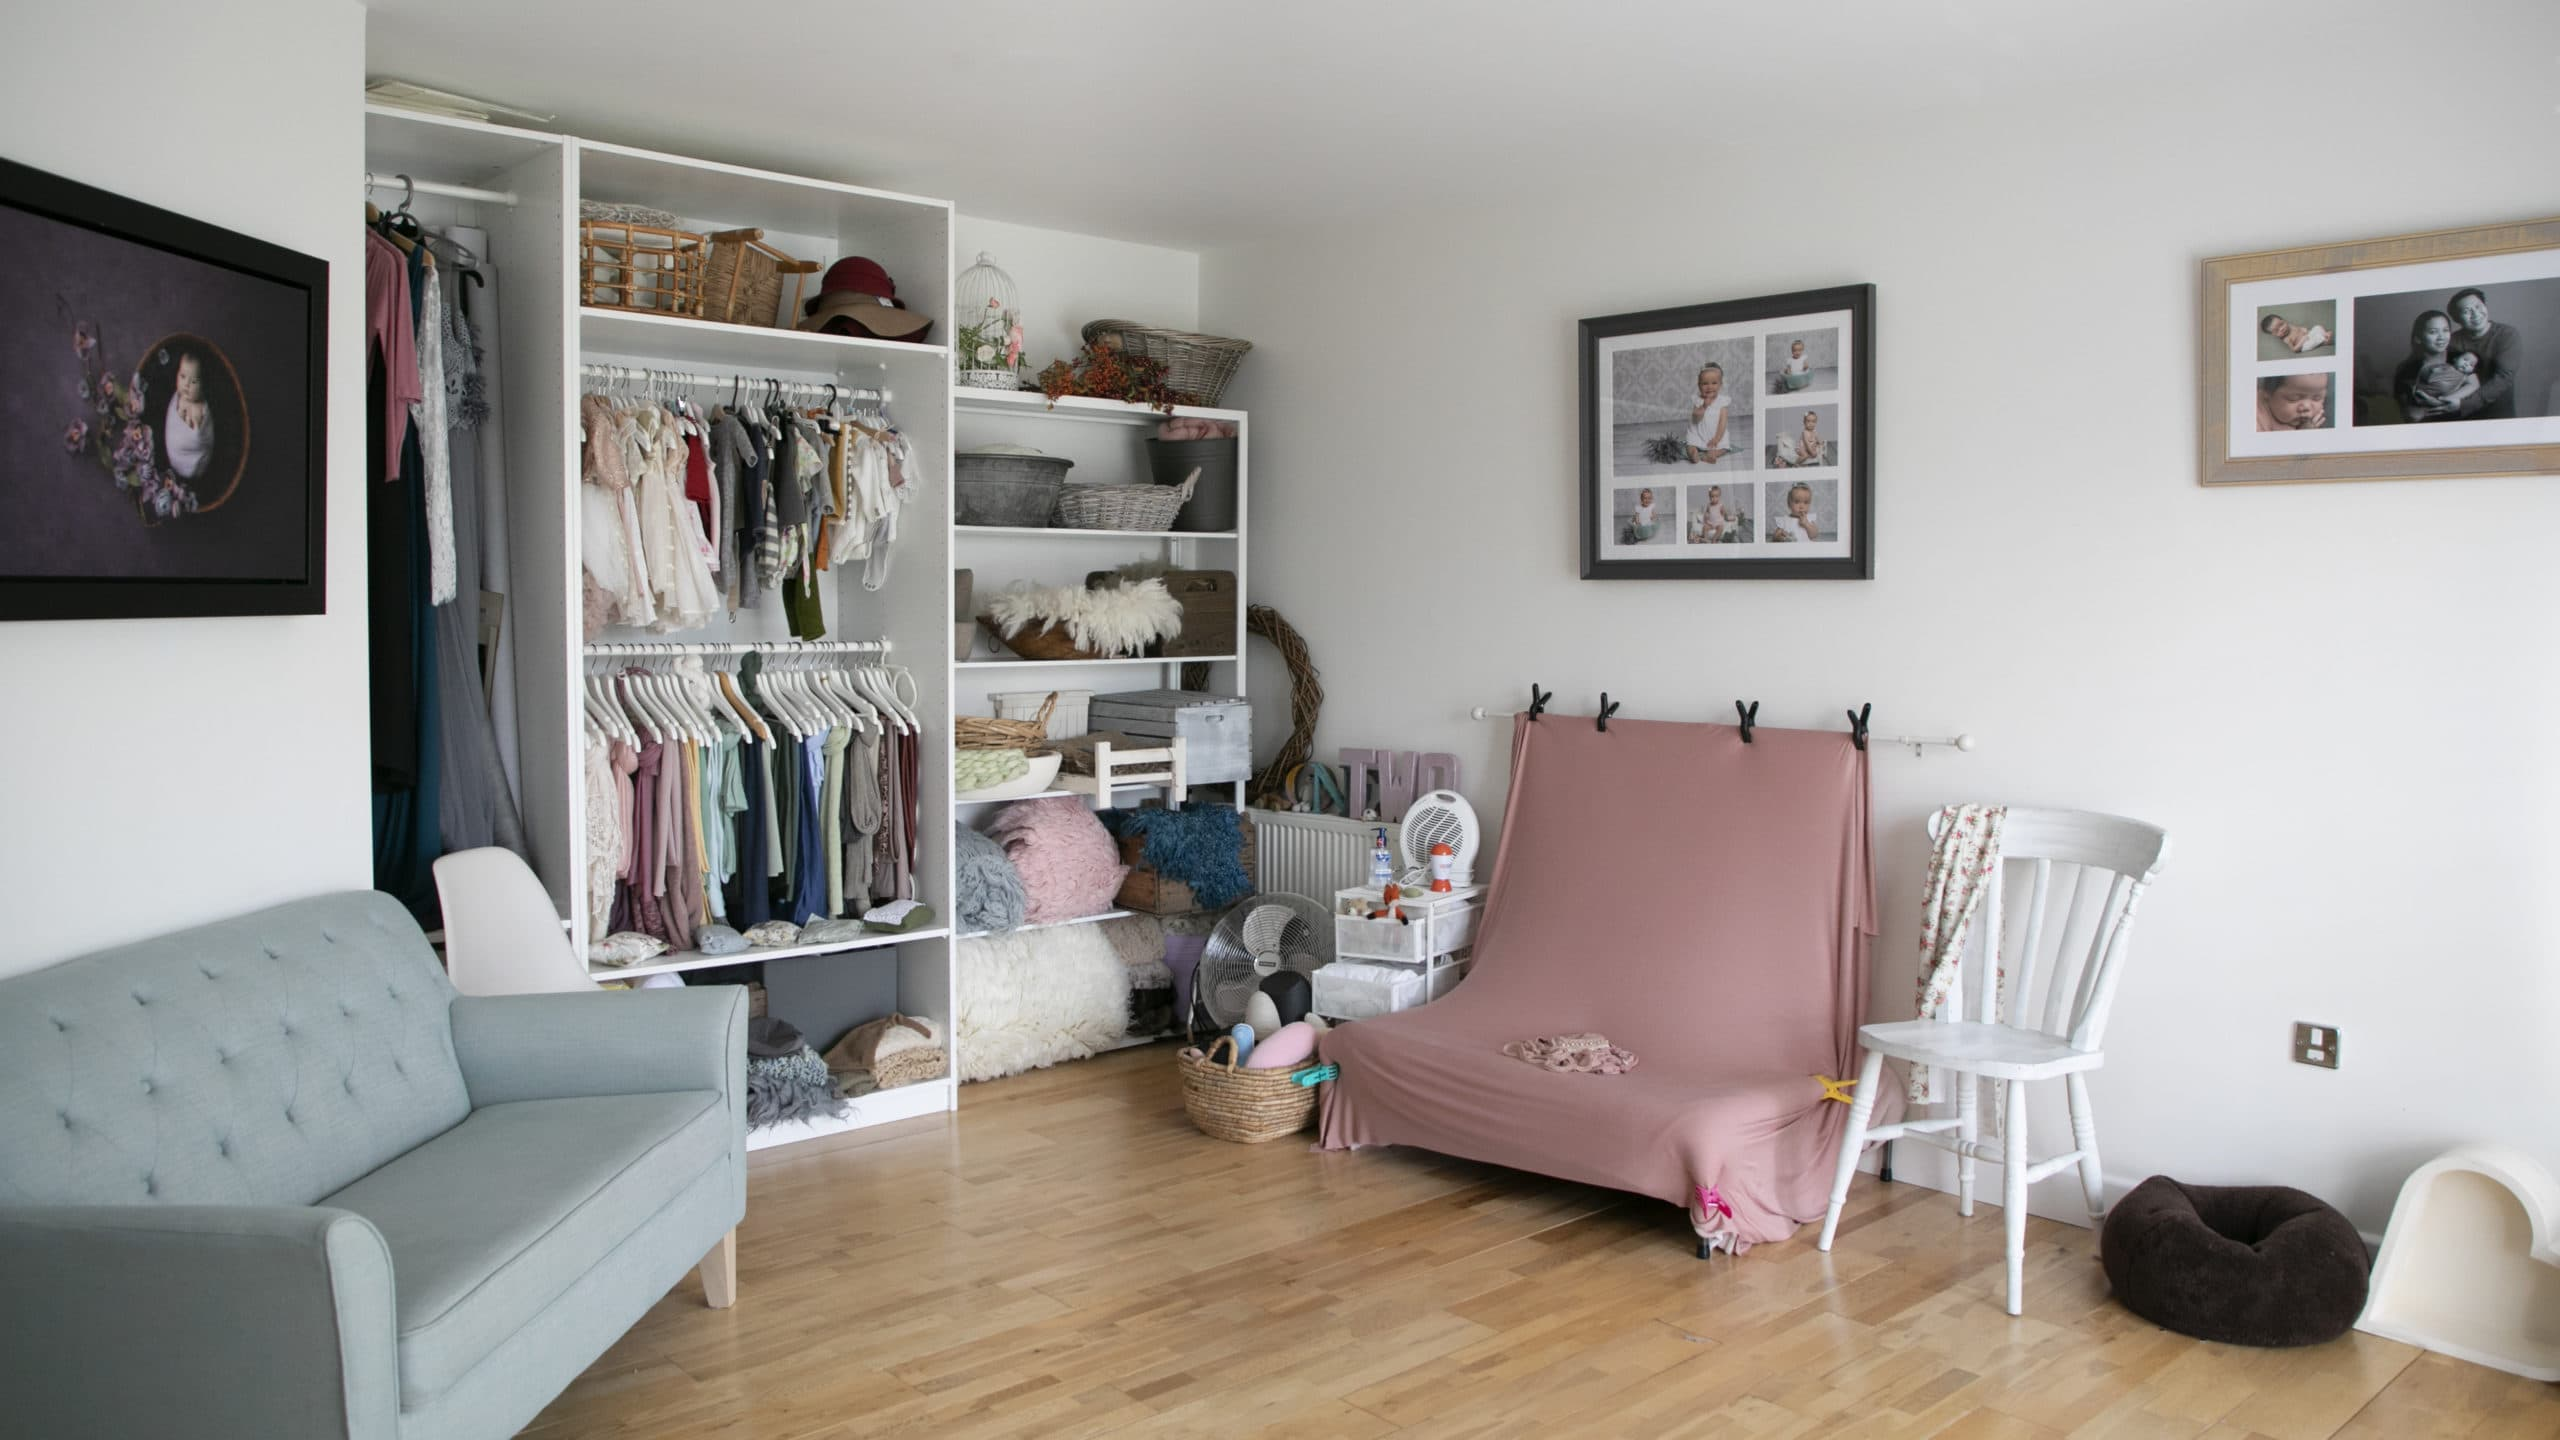 Baby Photographer Glasgow. Image of studio, with shelves, props and posing bed on display